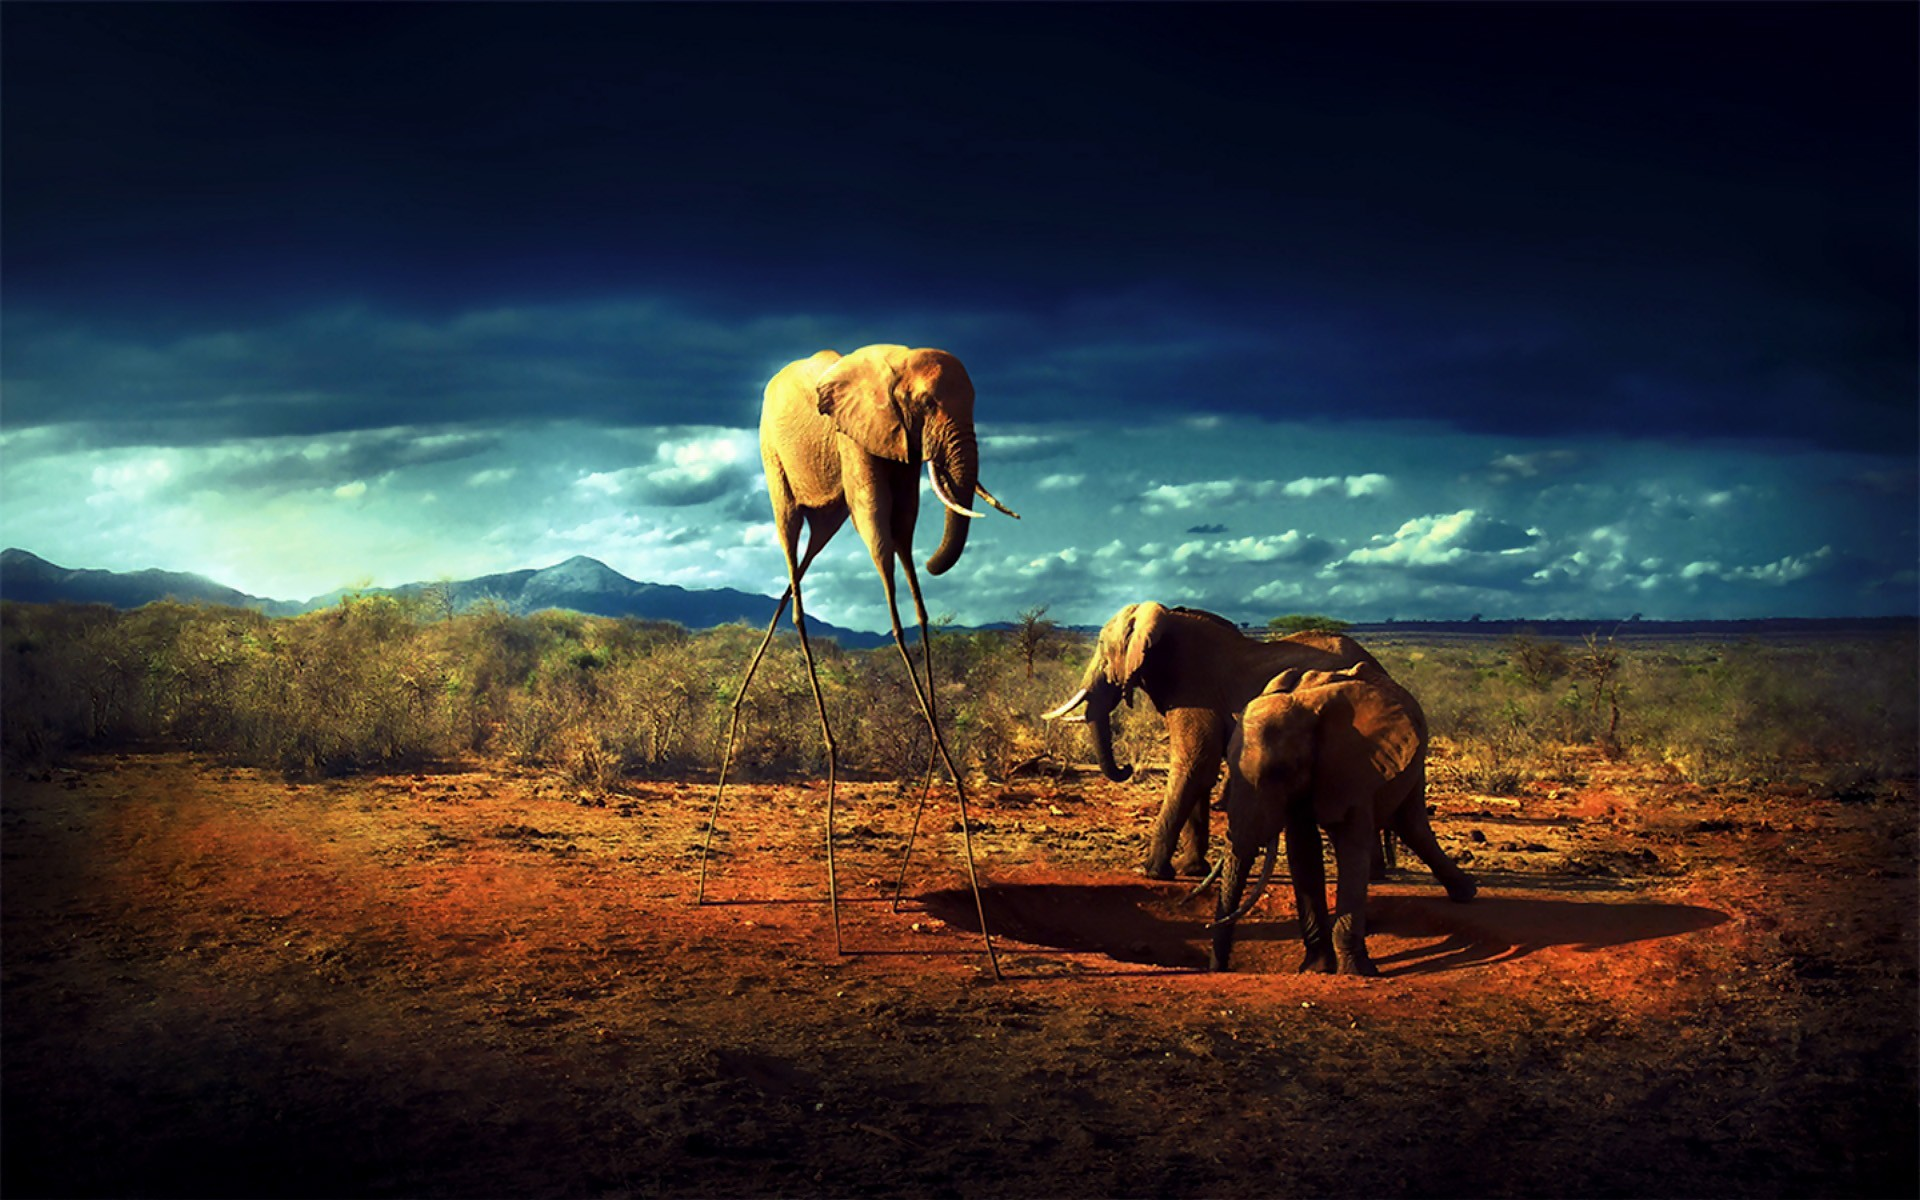 clouds Animals elephants HD Wallpaper